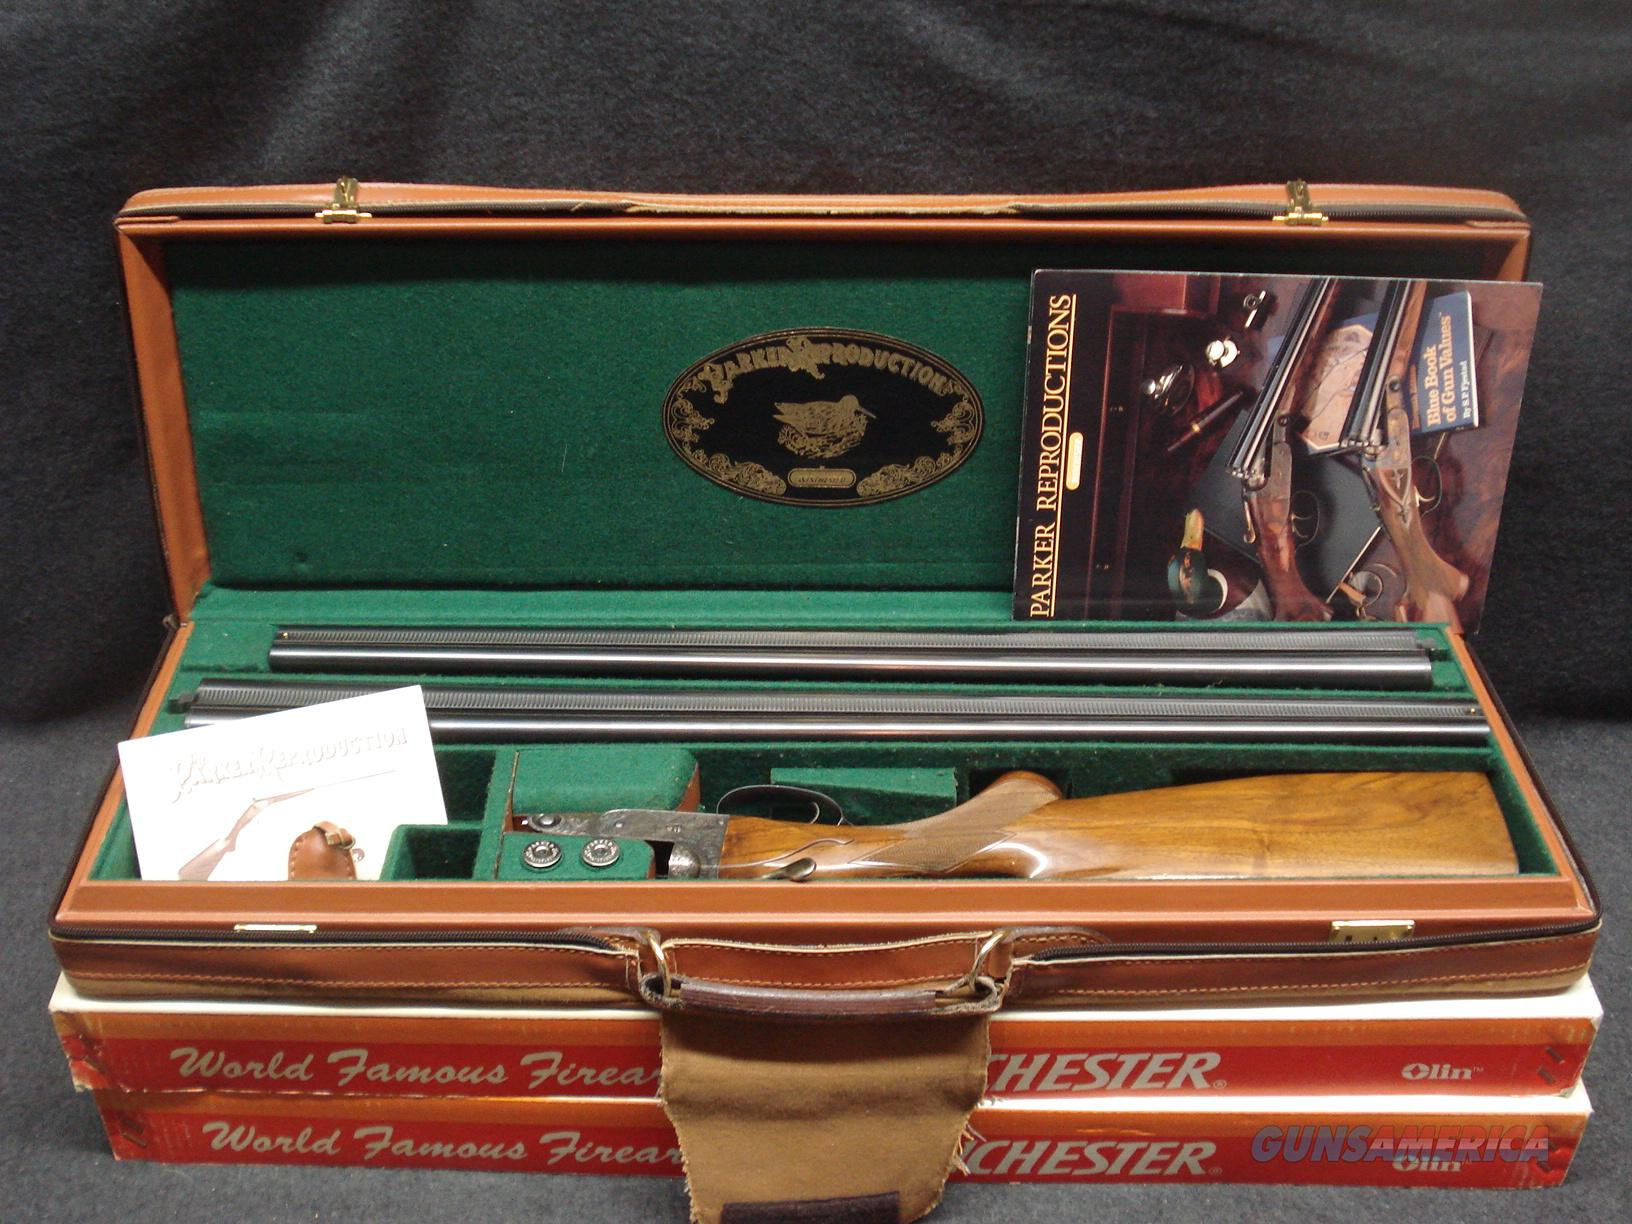 WINCHESTER PARKER REPRODUCTION 20GA 2 BARREL SET  Guns > Shotguns > Parker Reproductions Shotguns